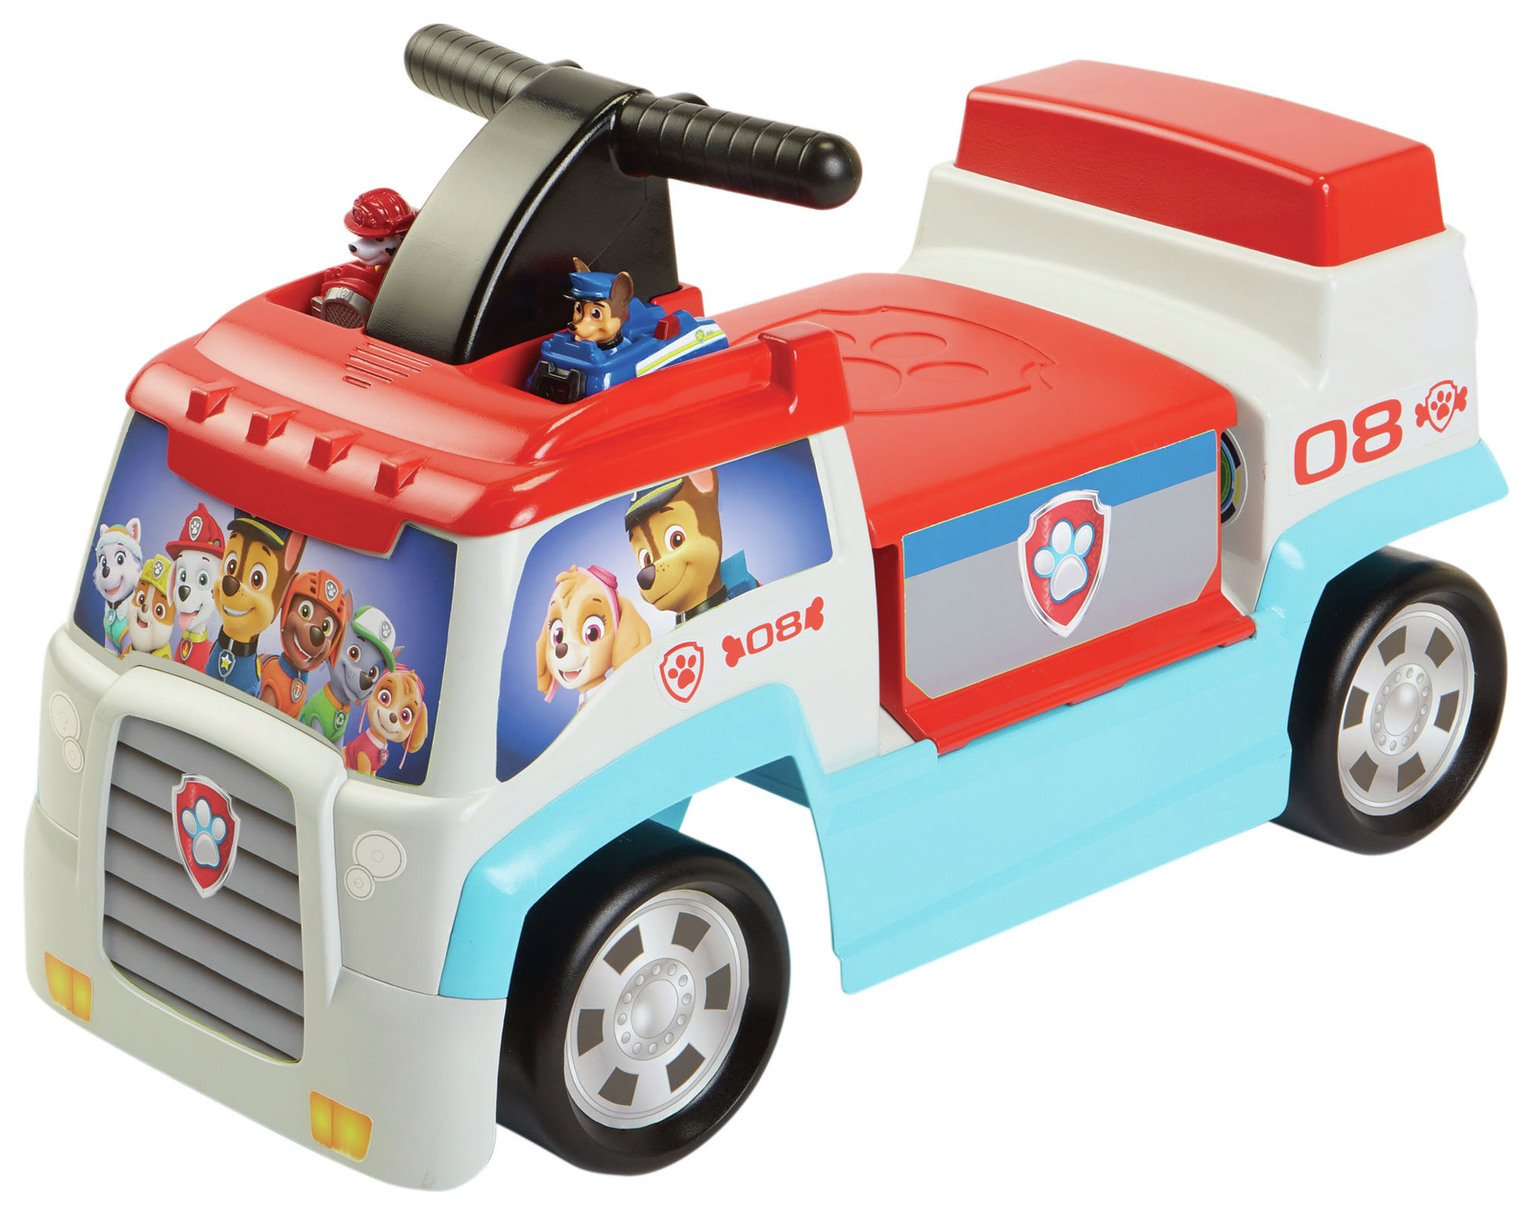 PAW Patrol PAW Patroller Ride On